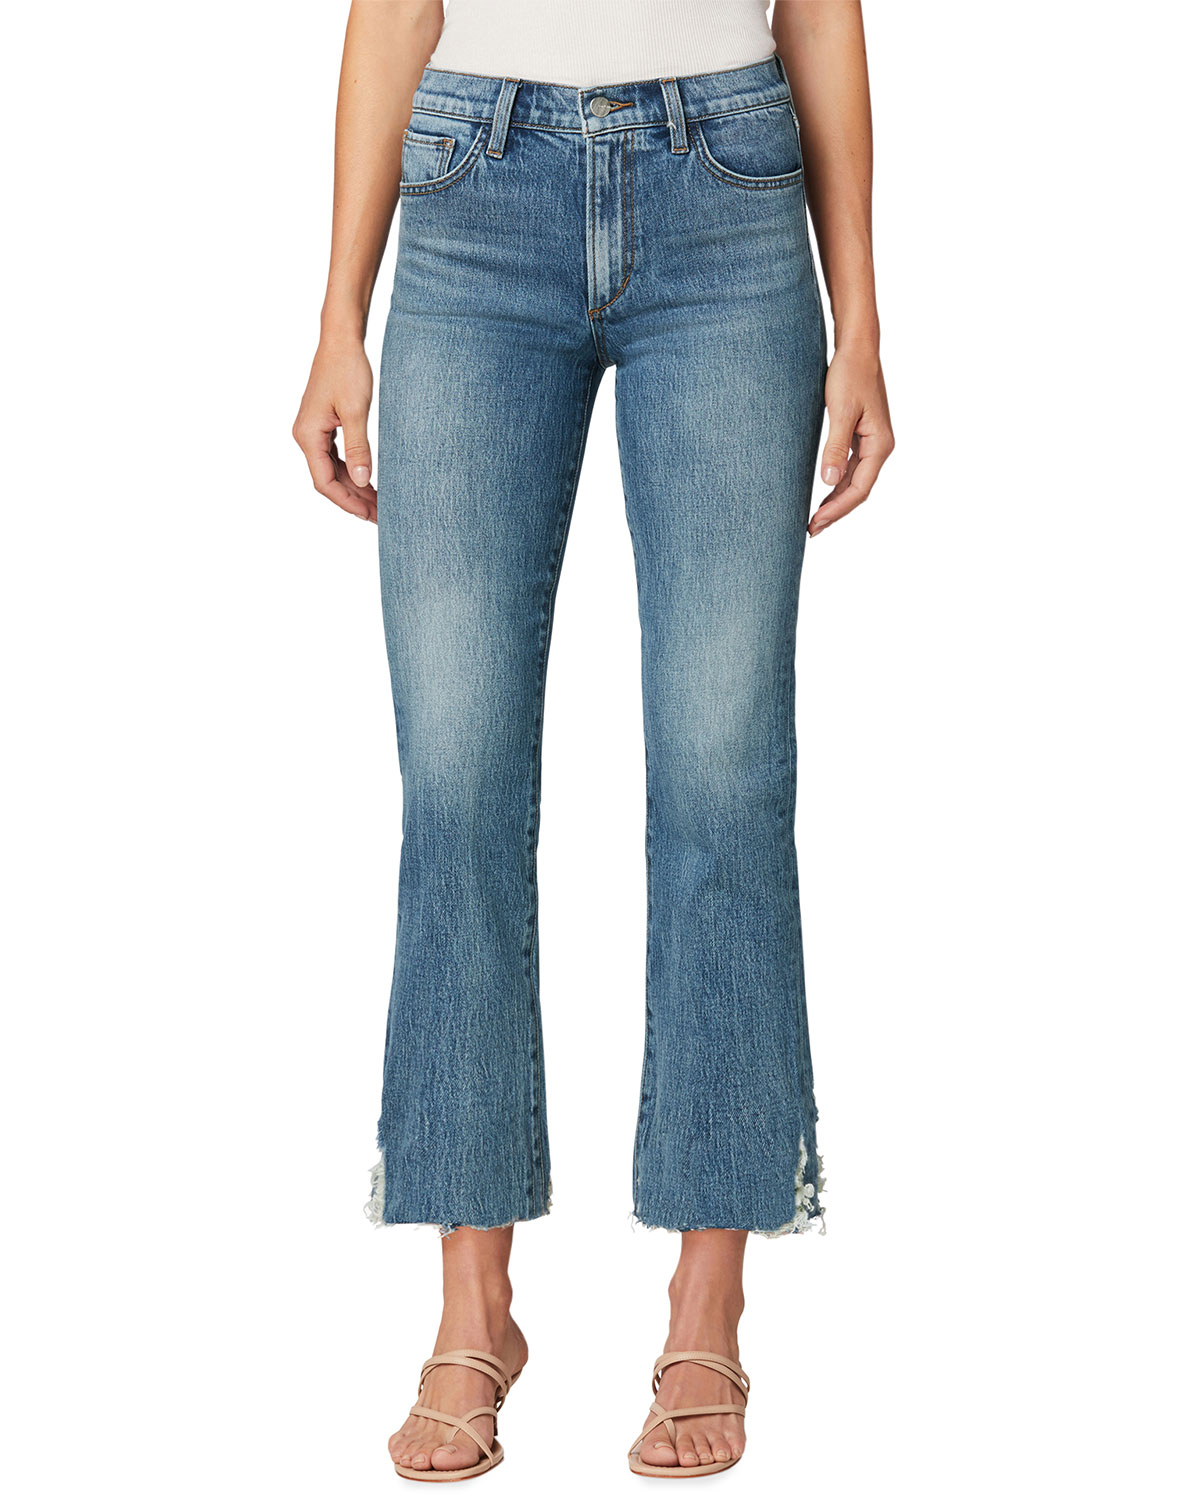 The Callie Boot-Cut Jeans with Destroyed Hem